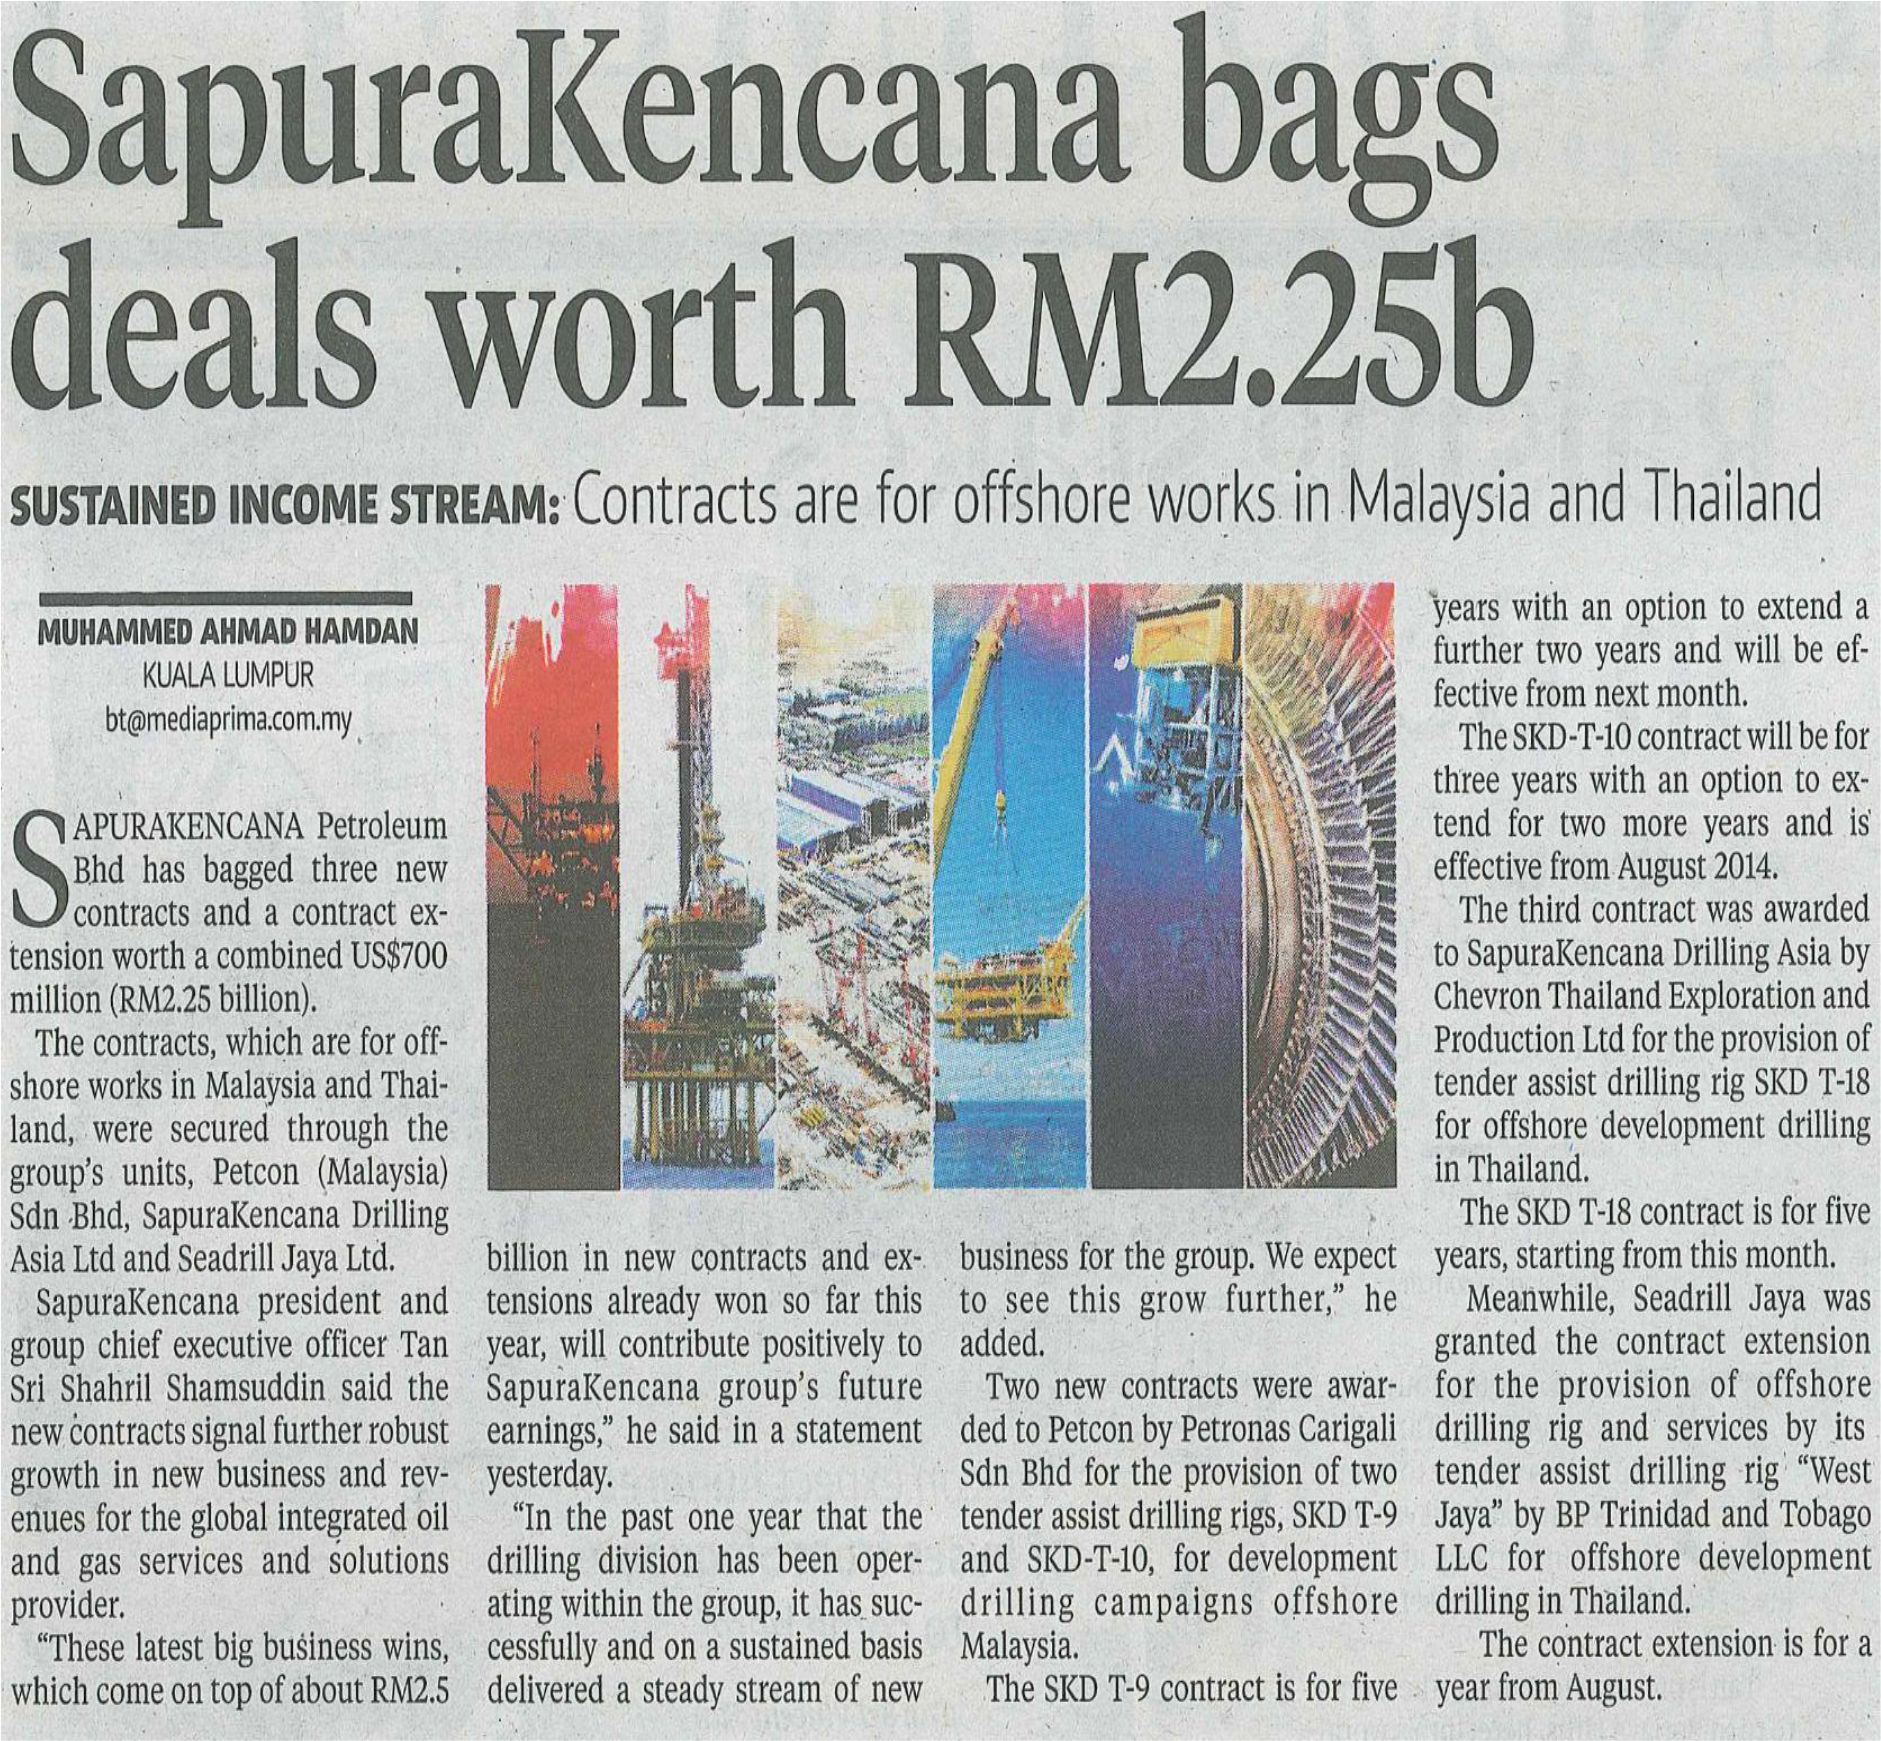 NST---SapuraKencana-bags-deals-worth-Rm2